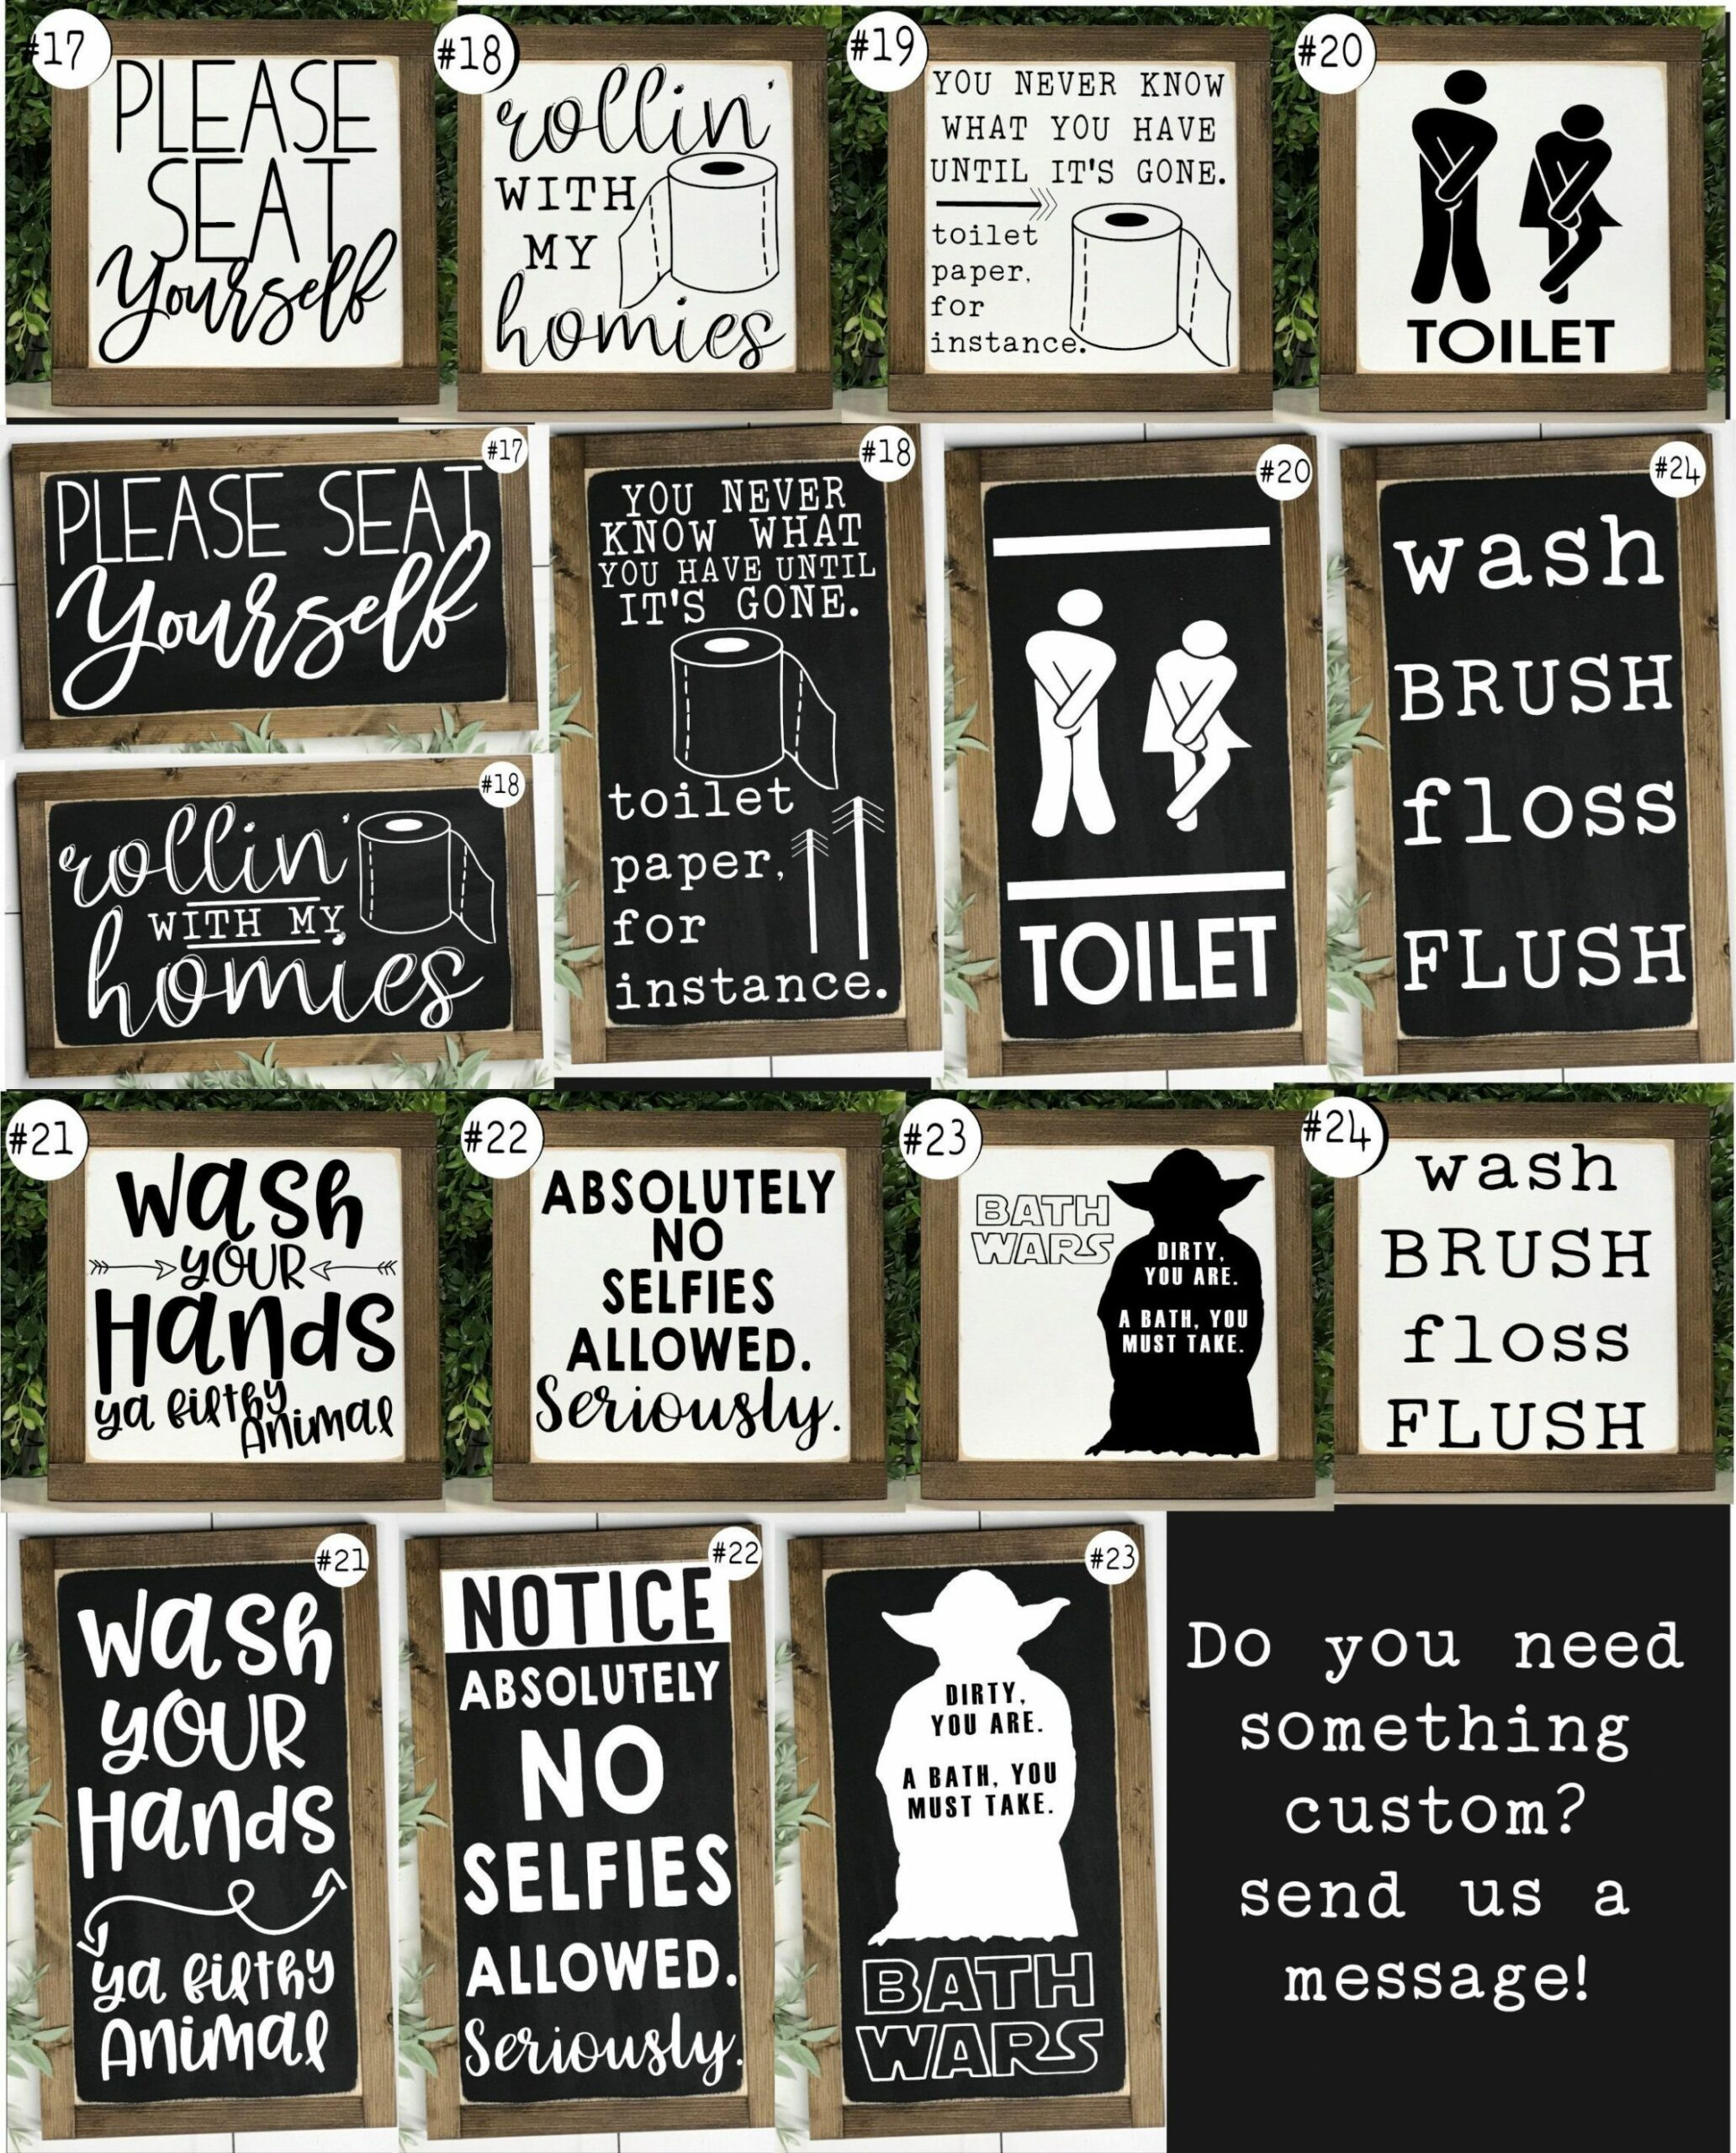 Funny Bathroom Signs Bathroom Wall Decor Kids Bathroom | Etsy ..